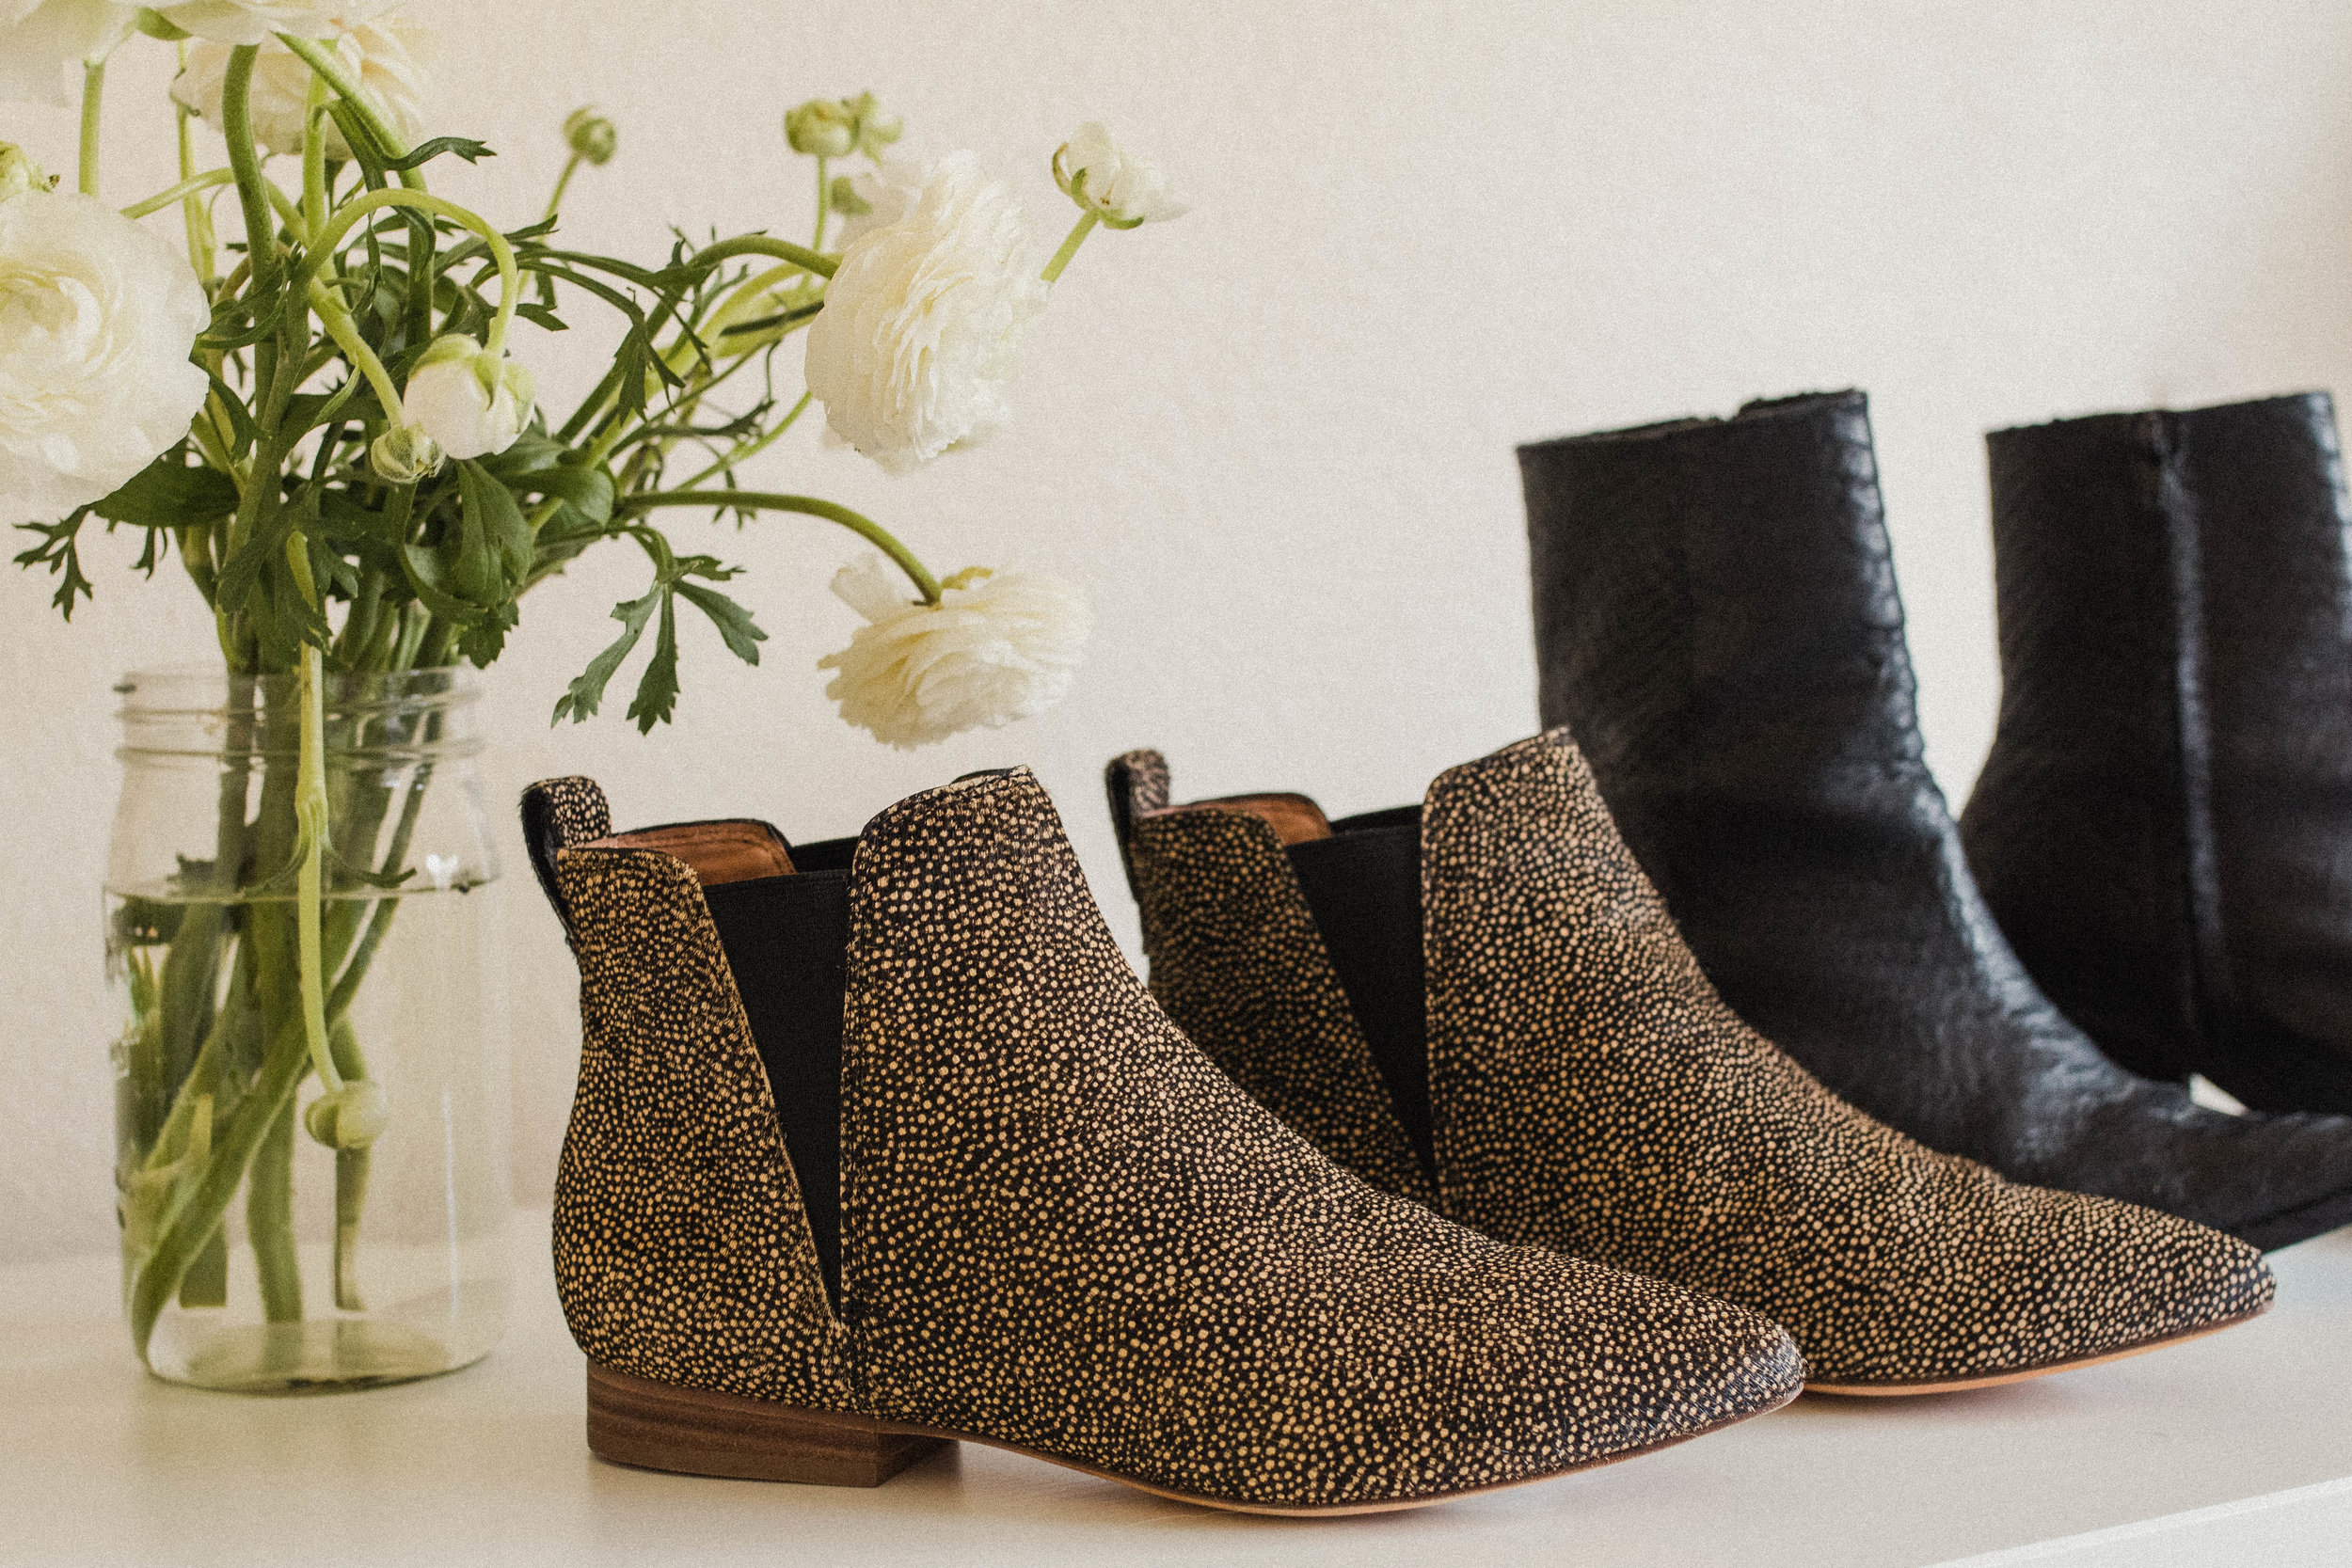 Madewell Patterned Booties